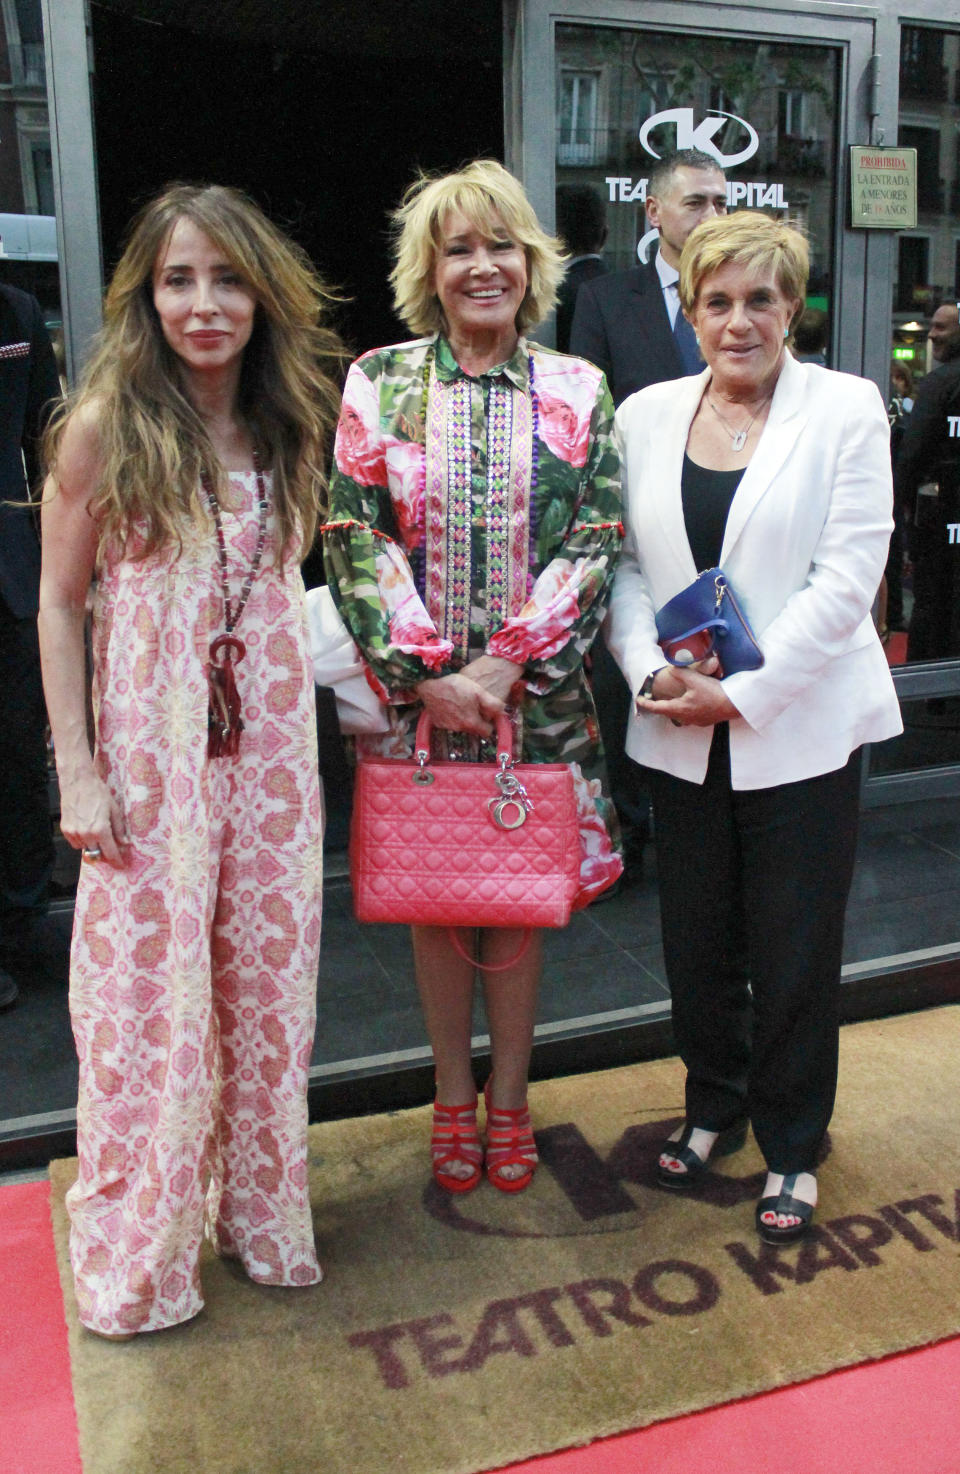 MADRID, SPAIN - MAY 16: (L-R) Maria Patino, Mila Ximenez and Chelo Garcia attend Belen Esteban's party at Kapital theatre on May 16, 2018 in Madrid, Spain.  (Photo by Europa Press/Europa Press via Getty Images)